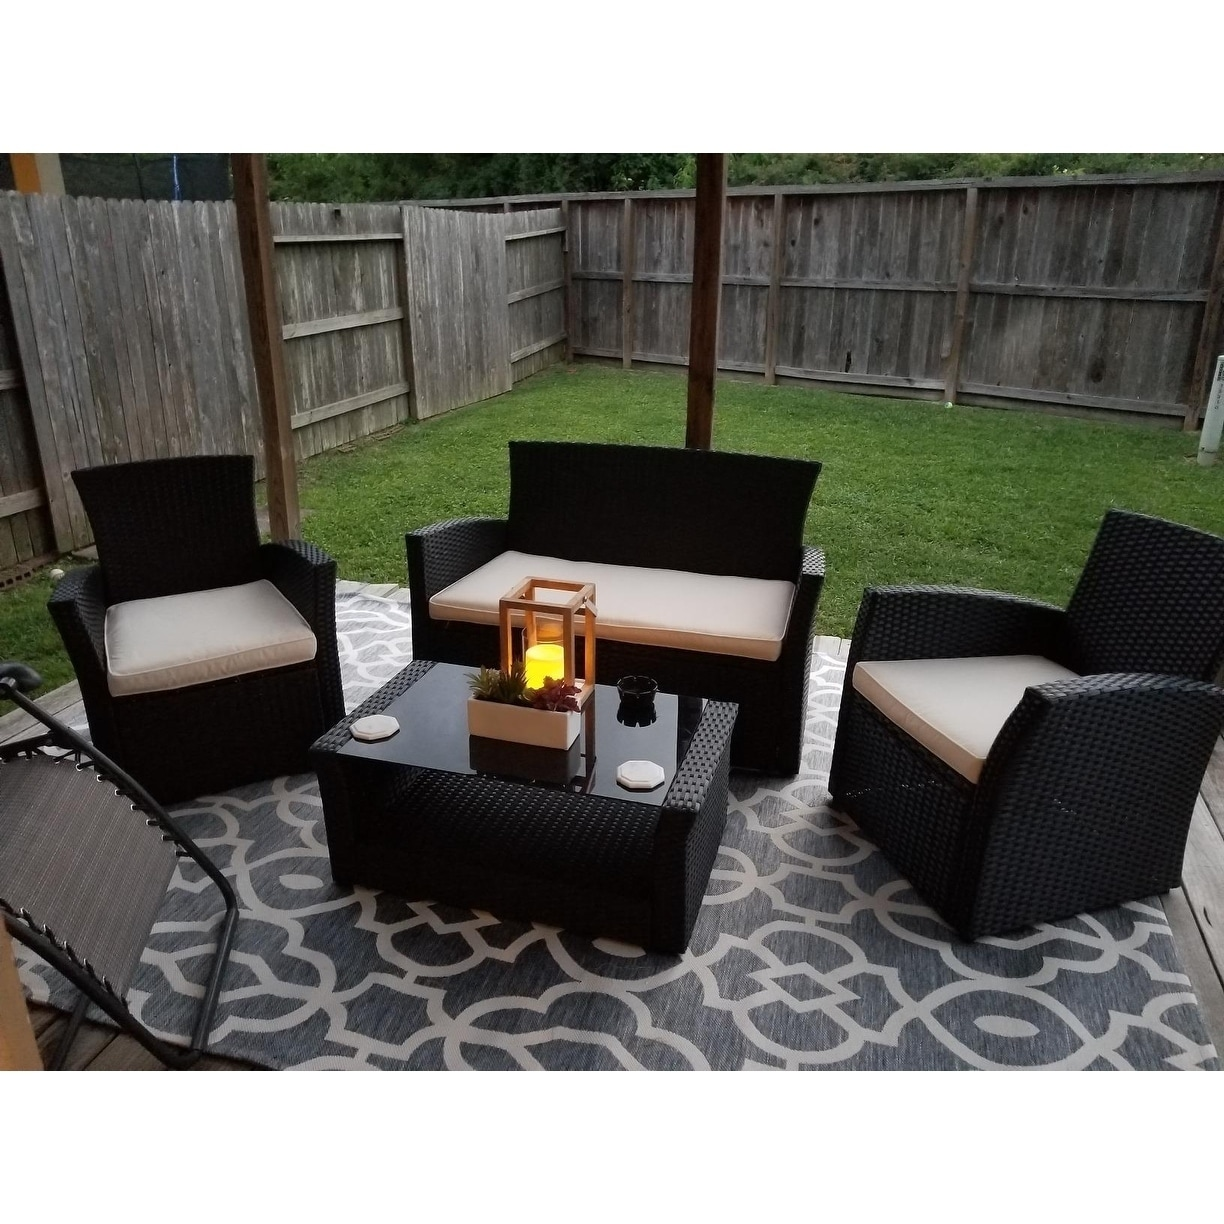 Rattan Sofa Near Me Patio Furniture Sets Near Me